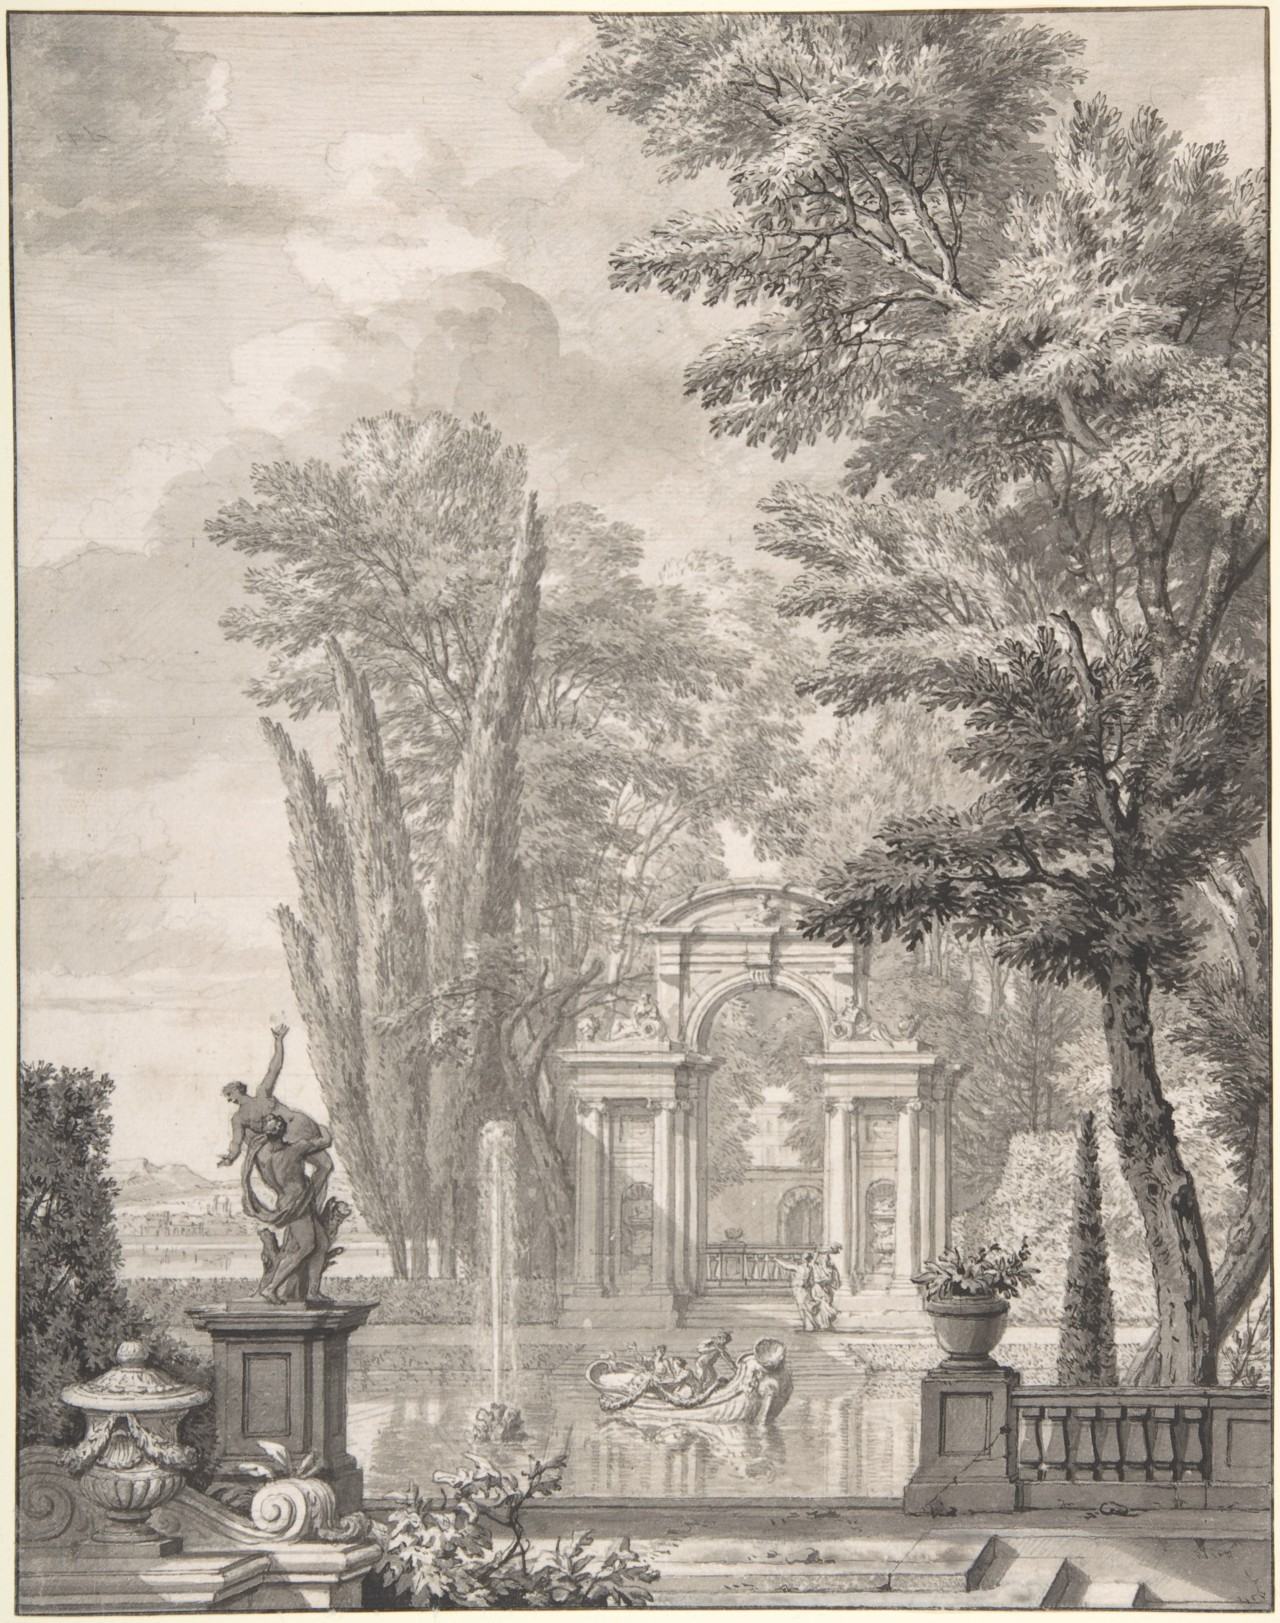 Landscape with Architecture, ca. 1730 Isaac de Moucheron (Netherlandish, 1667–1744) This drawing by Isaac de Moucheron, dated ca. 1730, illustrates an imaginary Italianate garden filled with classical architecture and statuary. Beautiful in its own right and much sought after by collectors, the main idea and composition of this drawing may have been used for a larger wall design, carrying the nostalgic atmosphere of a lost arcadia into the Northern European mansion.